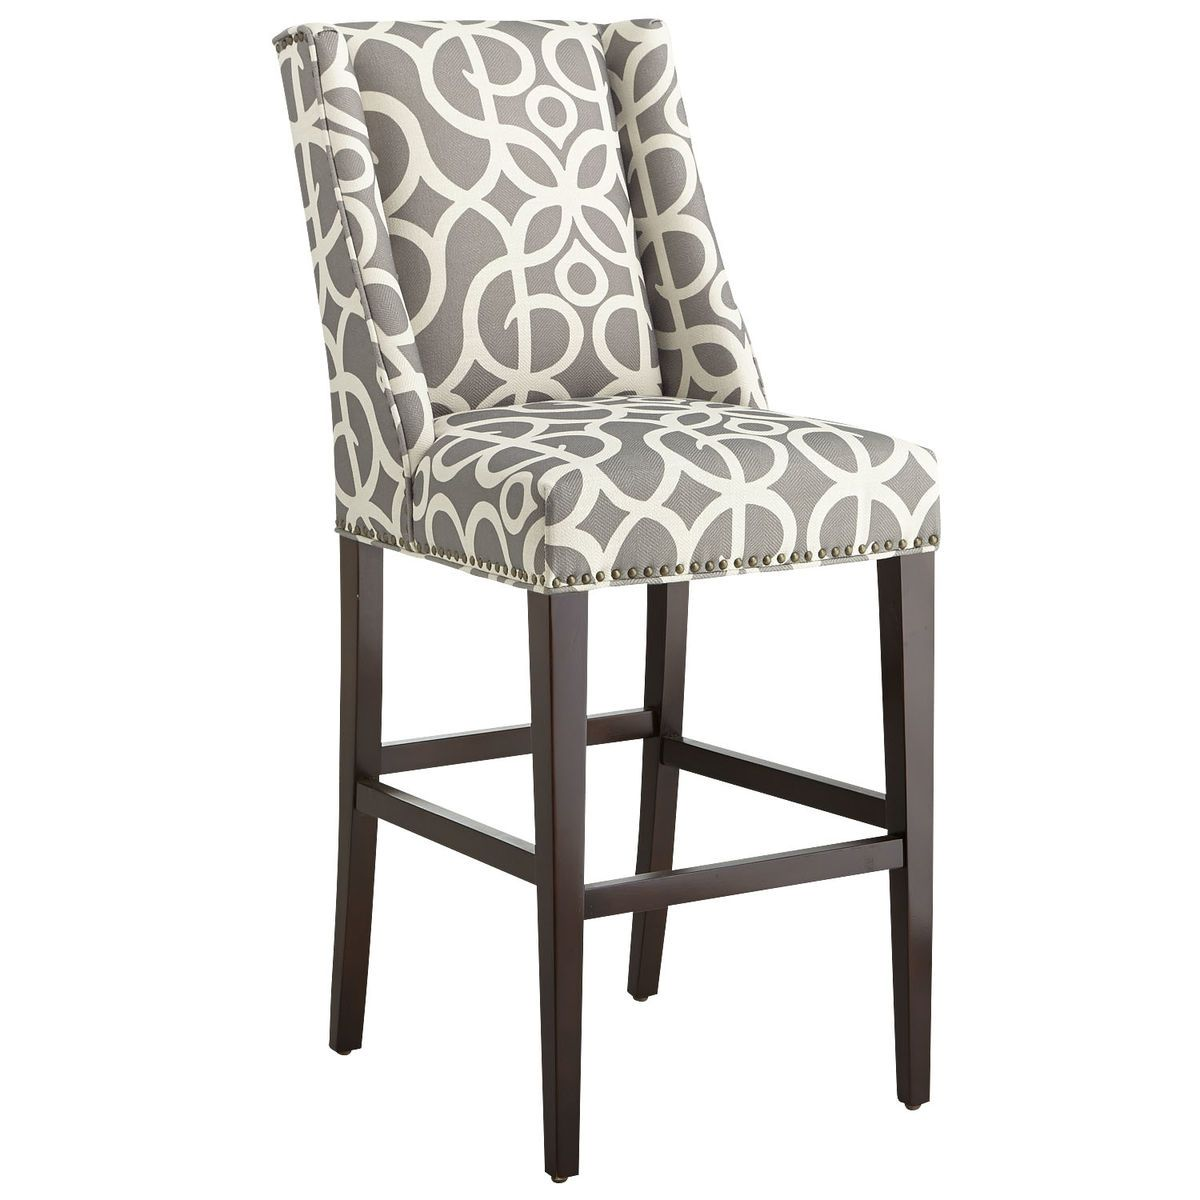 Pleasant Owen Pewter Bar Counter Stool Pier 1 Imports Bar Ocoug Best Dining Table And Chair Ideas Images Ocougorg